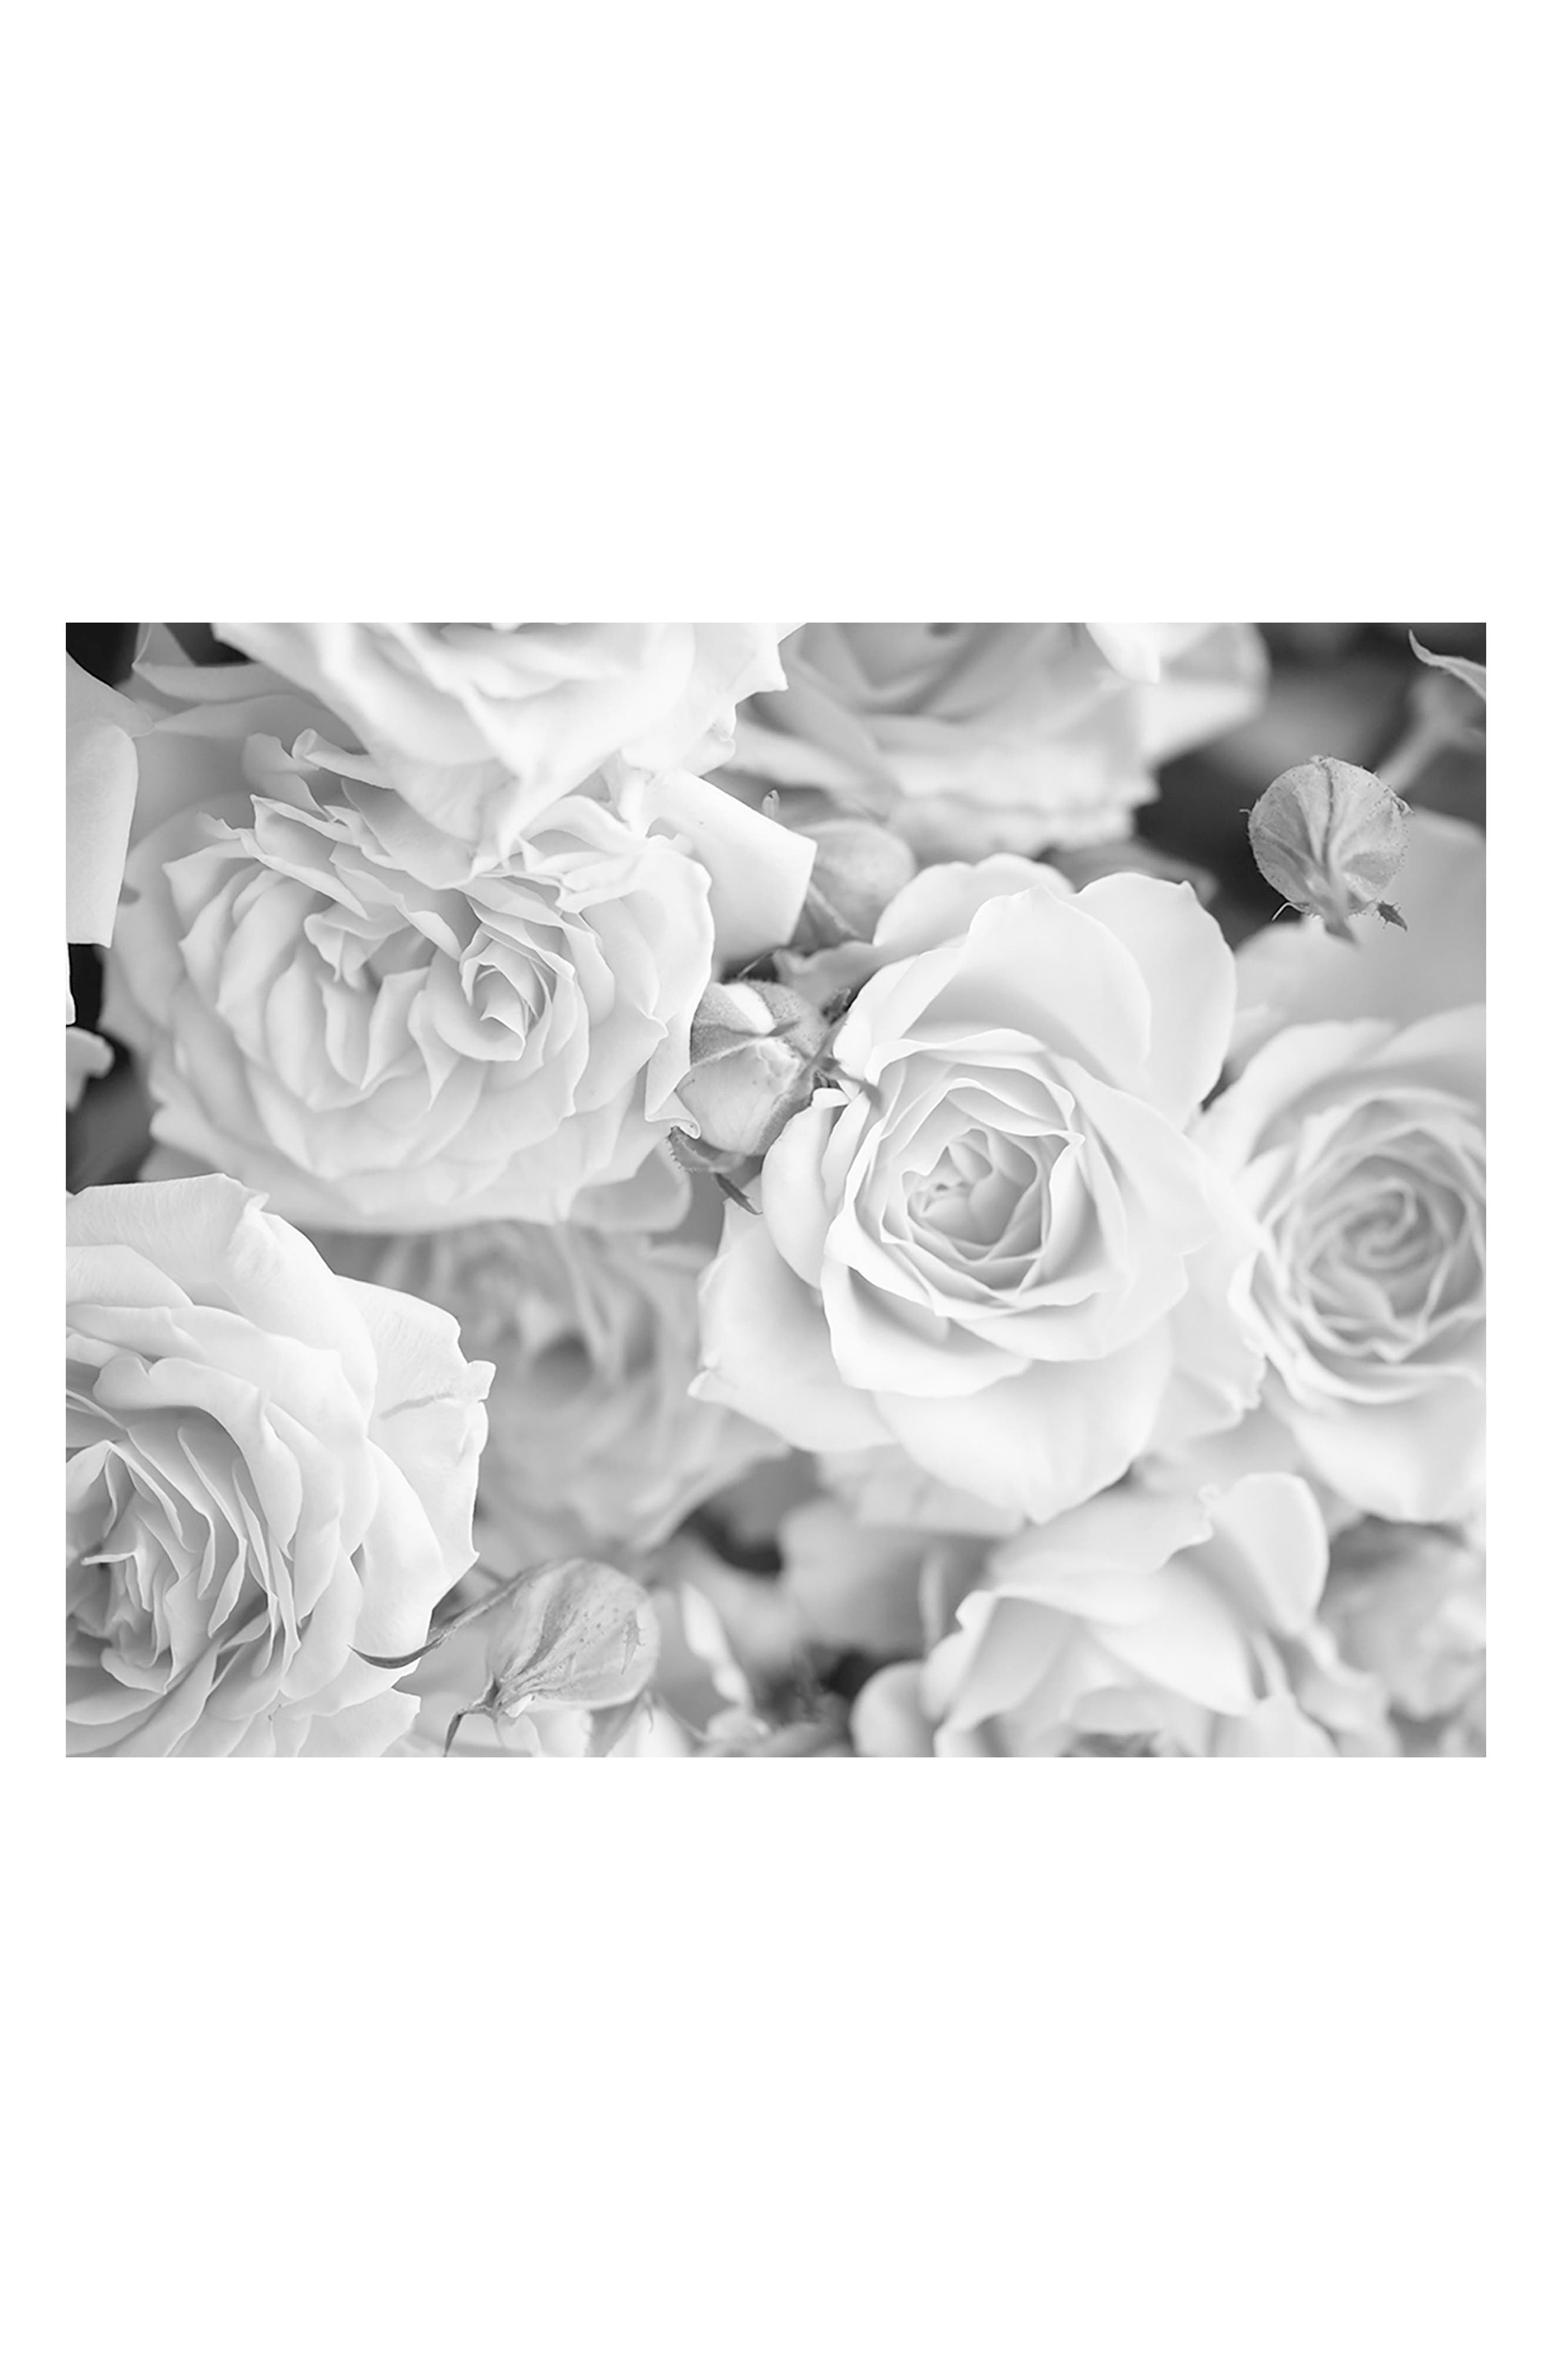 Grey Petals 6-Panel Wall Mural,                         Main,                         color, White Off-White